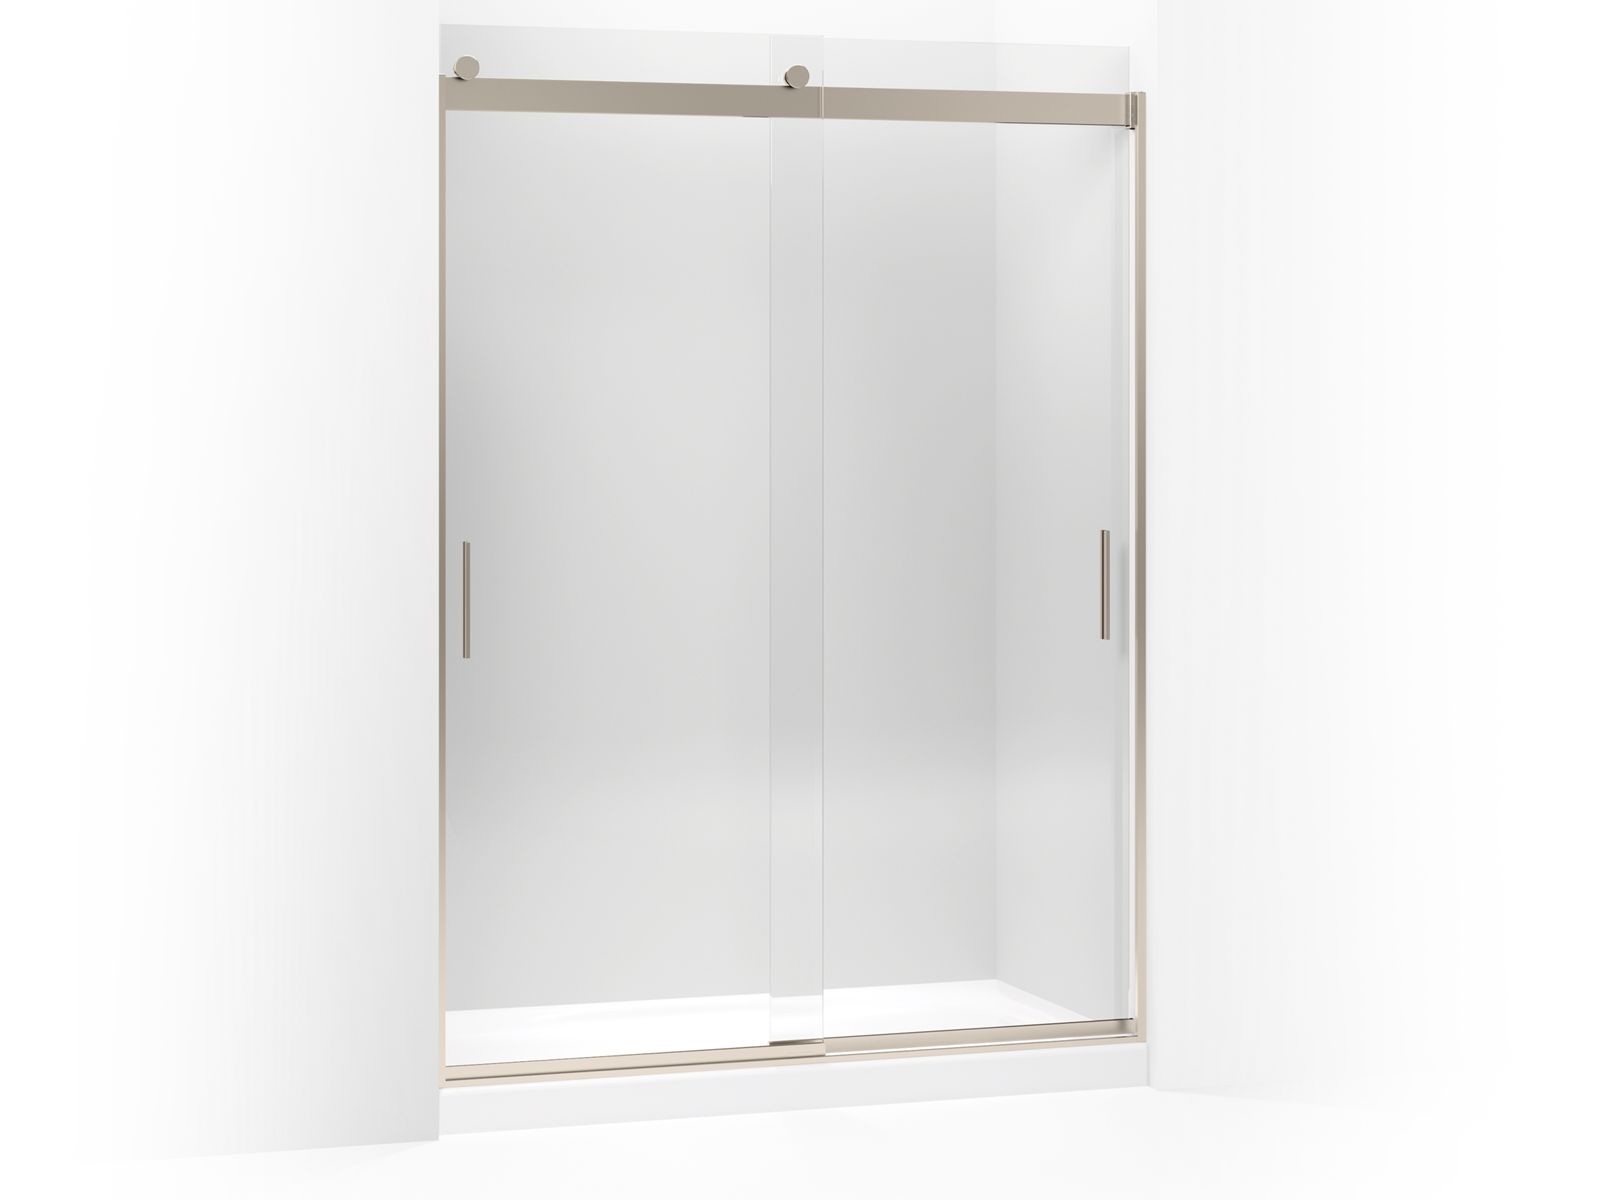 K-706013-L | Levity Frameless Sliding Shower Door | KOHLER